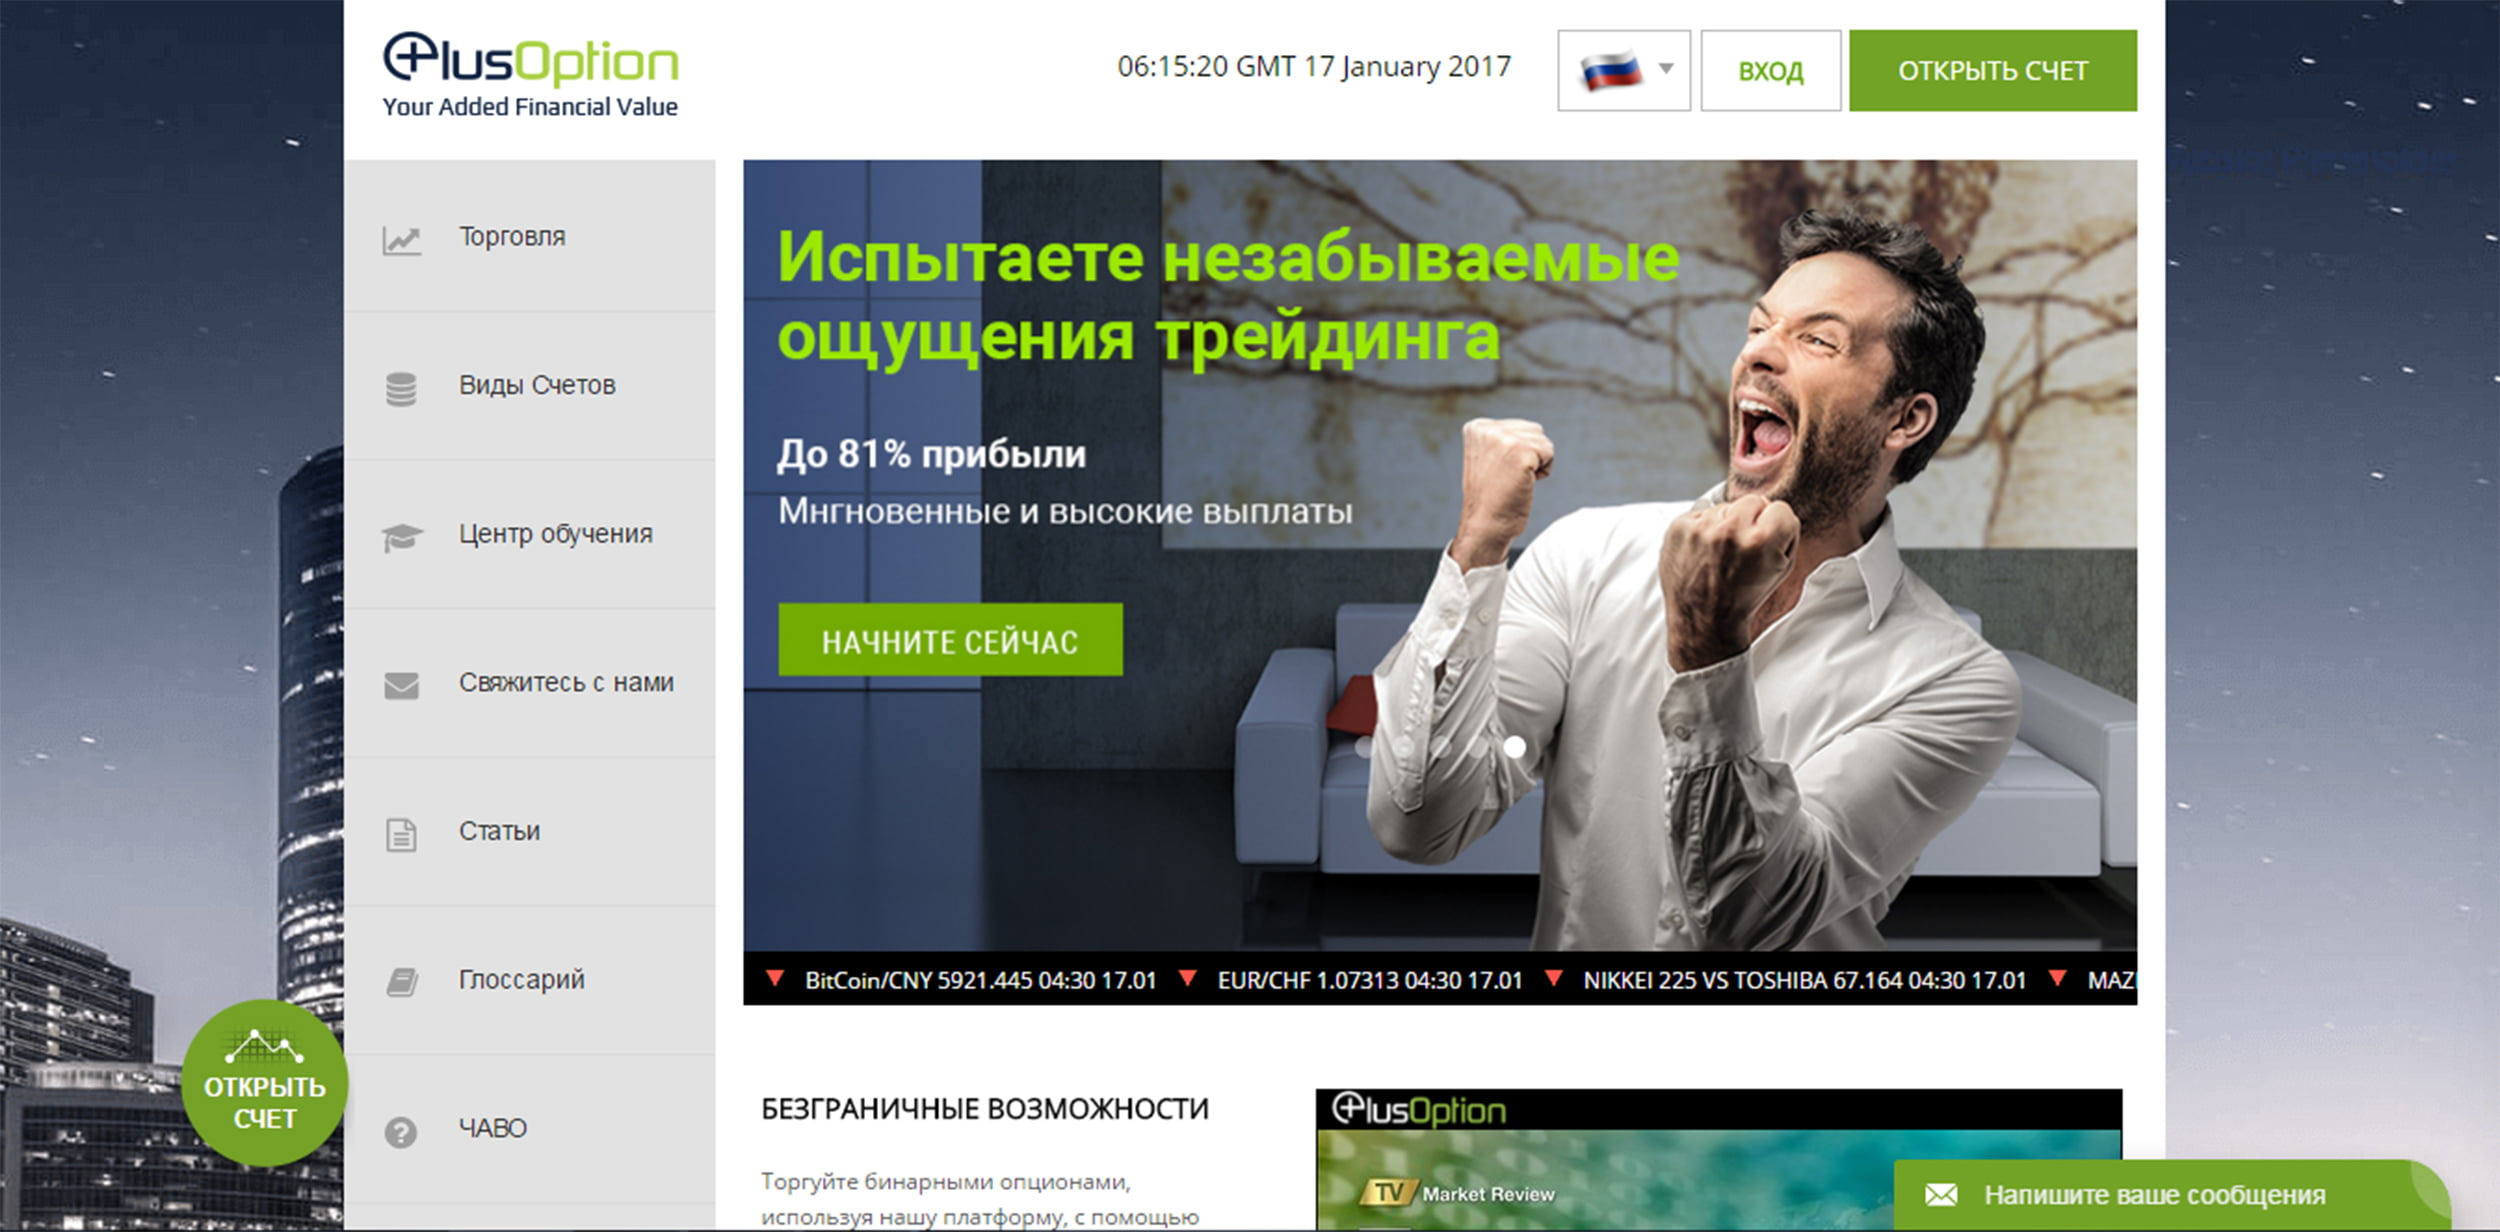 Брокер Plusoption.com